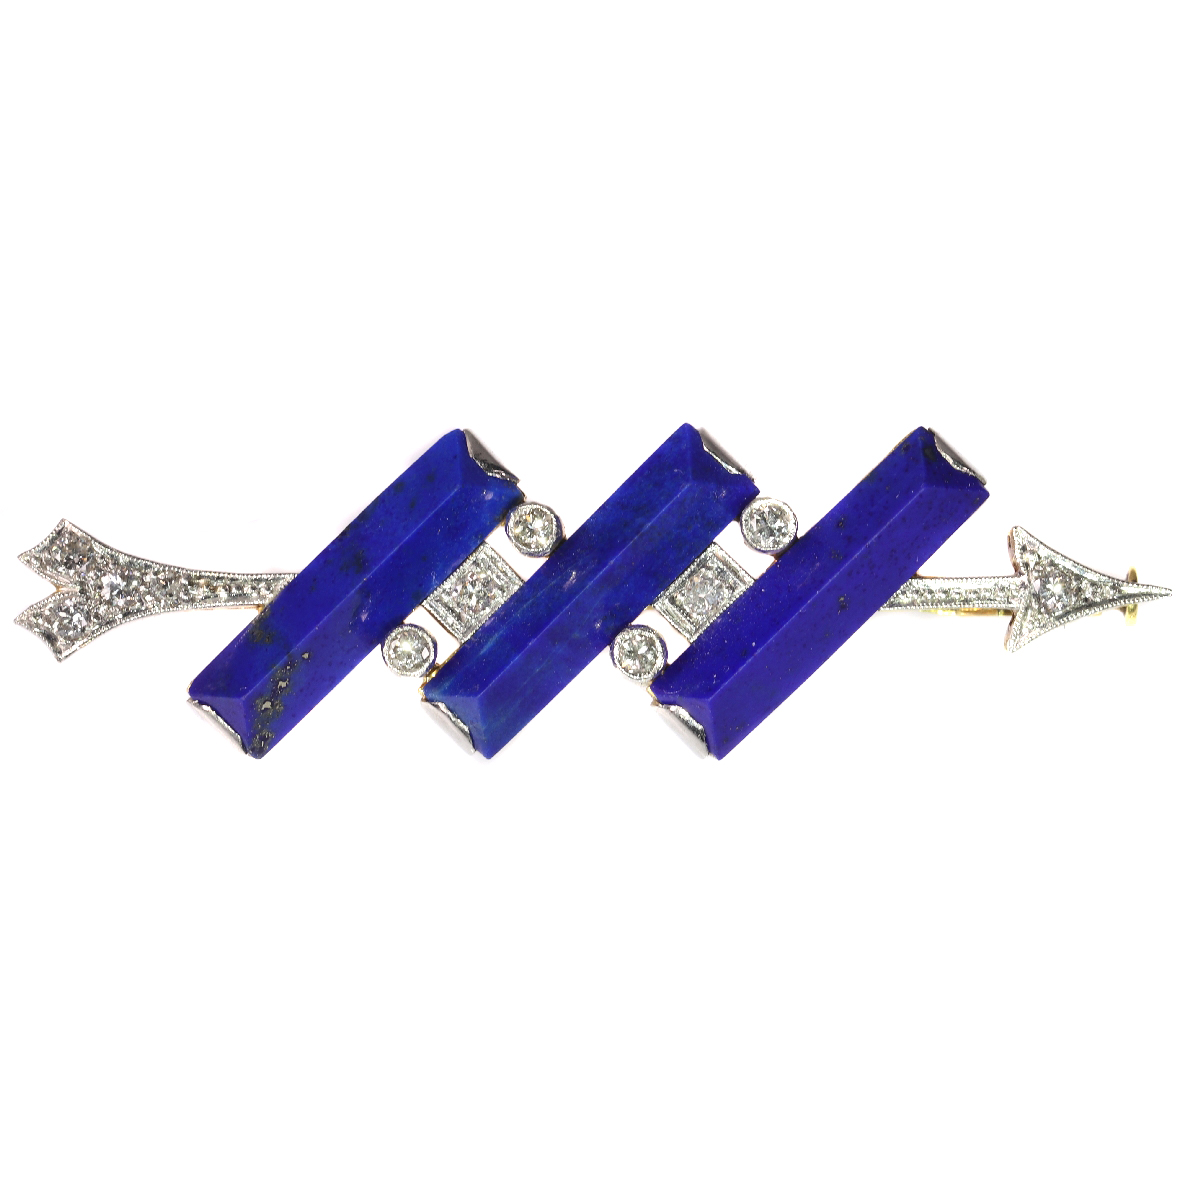 Diamond arrow brooch perforating three solid bars of lapis lazuli